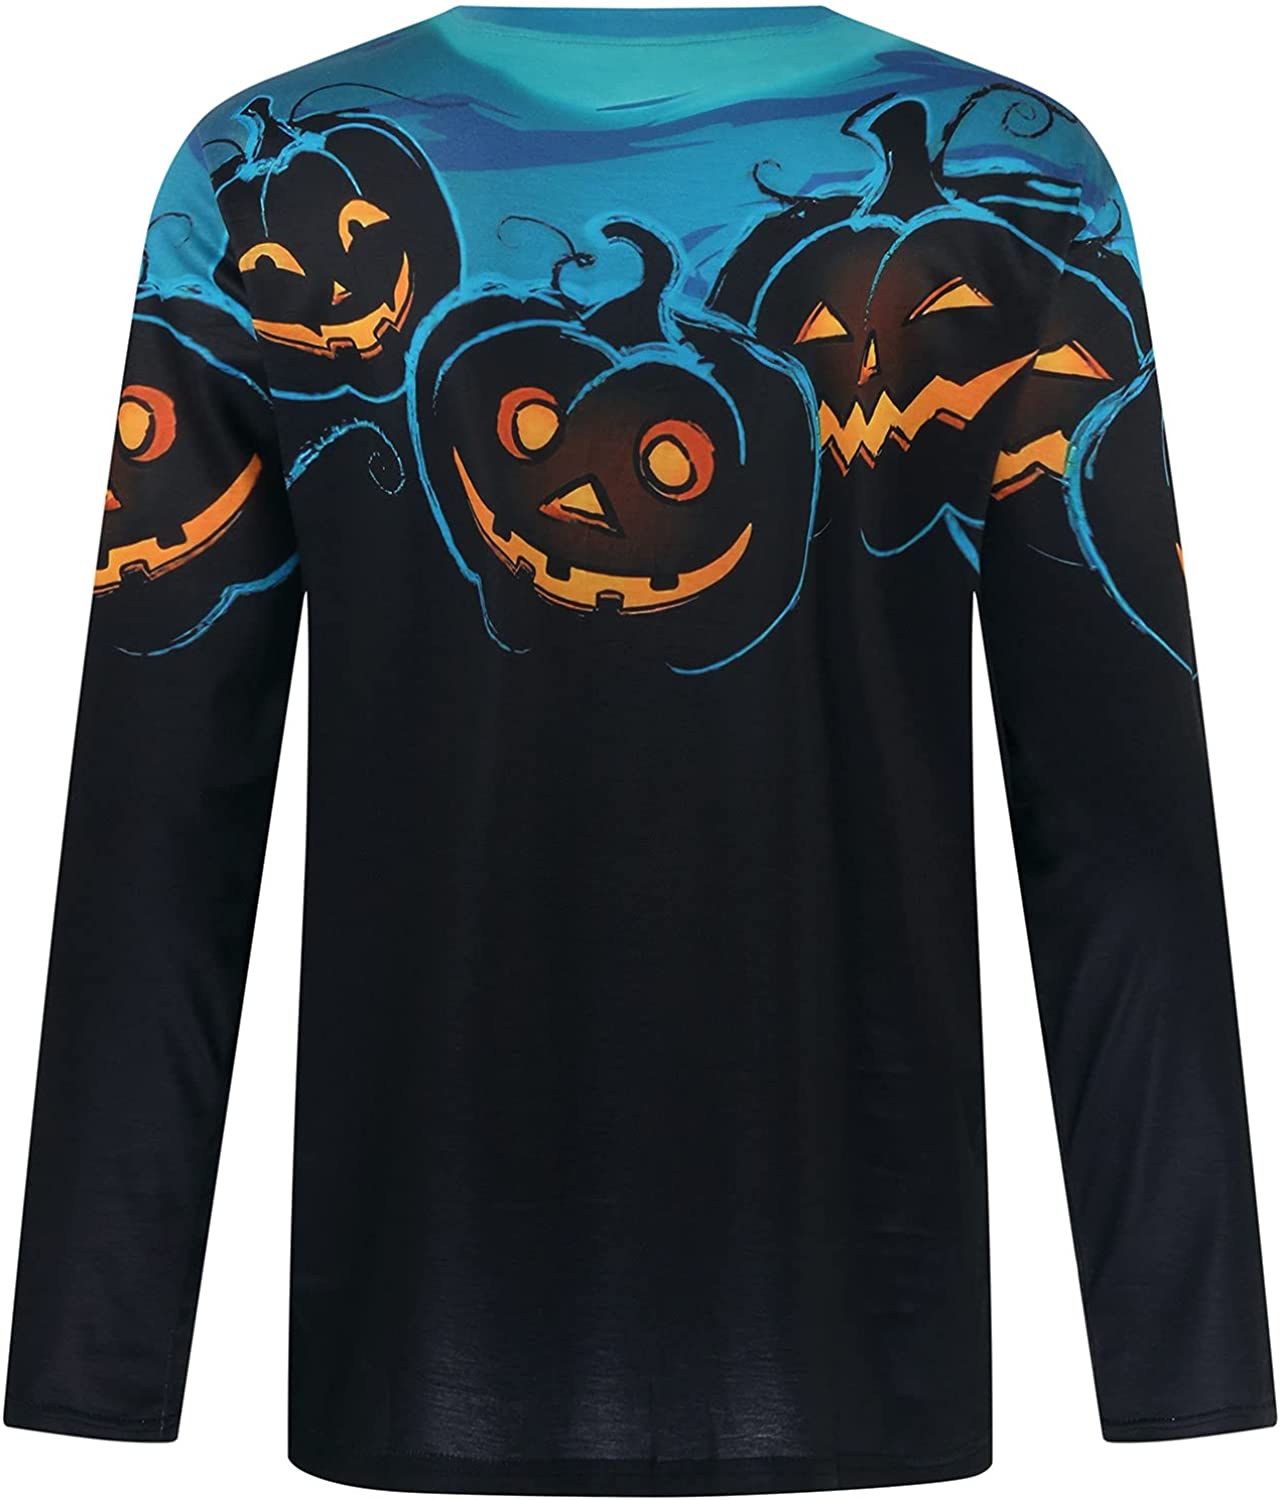 Mens Oversized Fall Tops Halloween Casual Long Sleeve Tie Dye T-Shirt Pullover Pumpkin Skeleton Graphic Print Tees Ghost